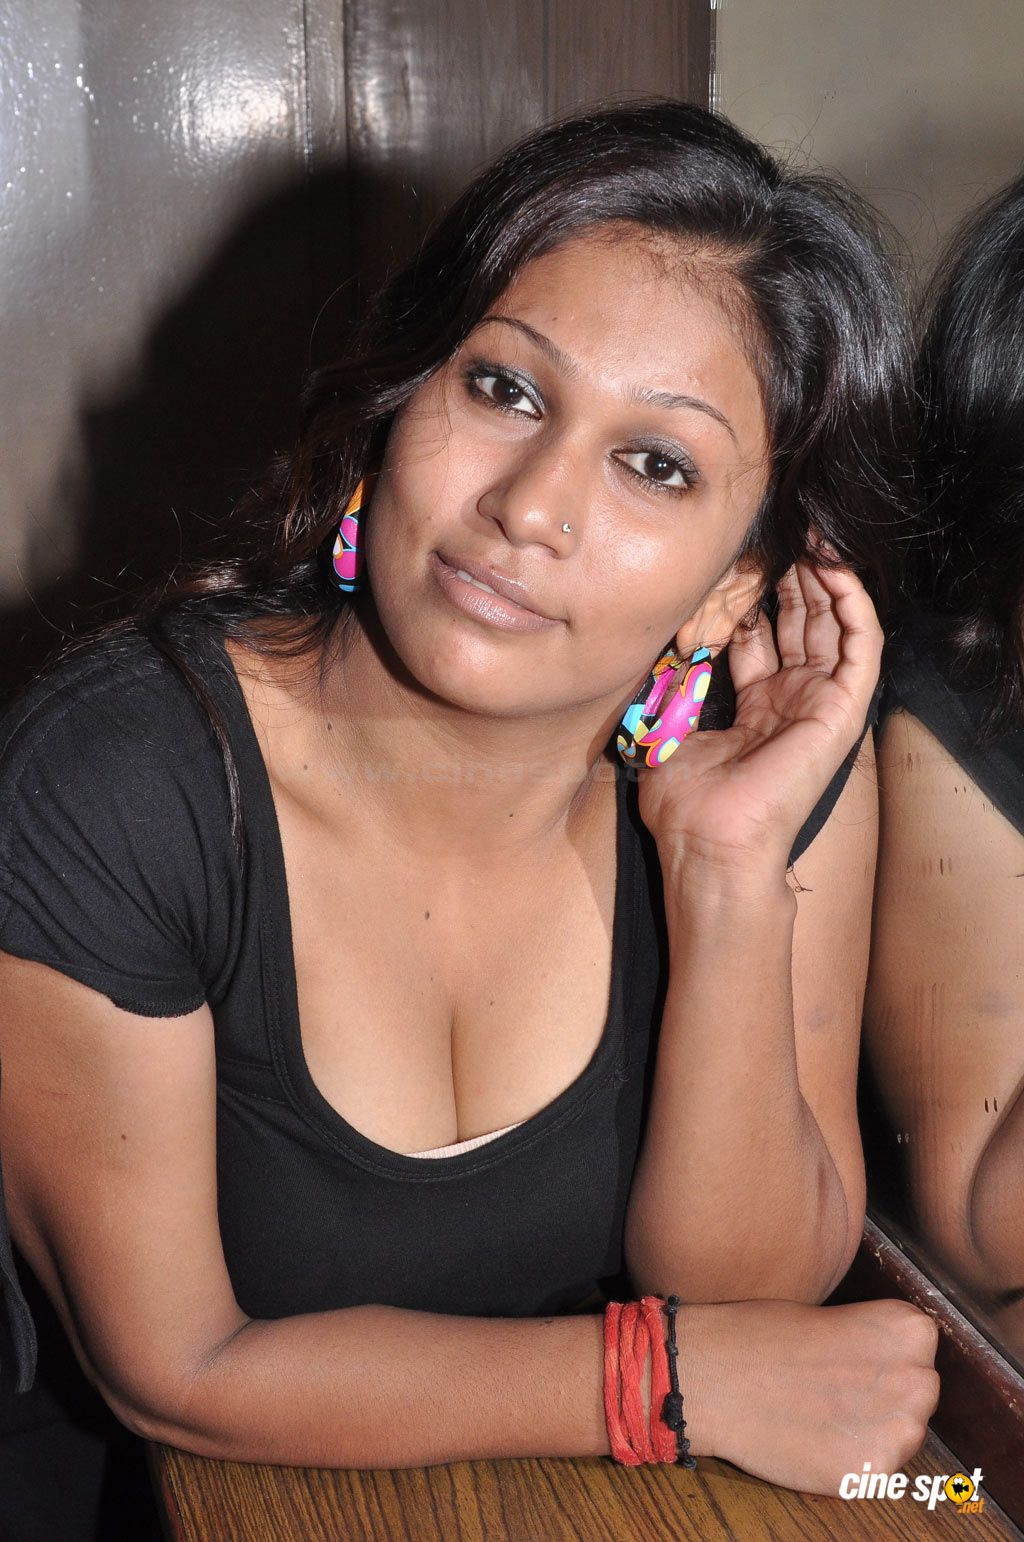 Bar slut cute indian